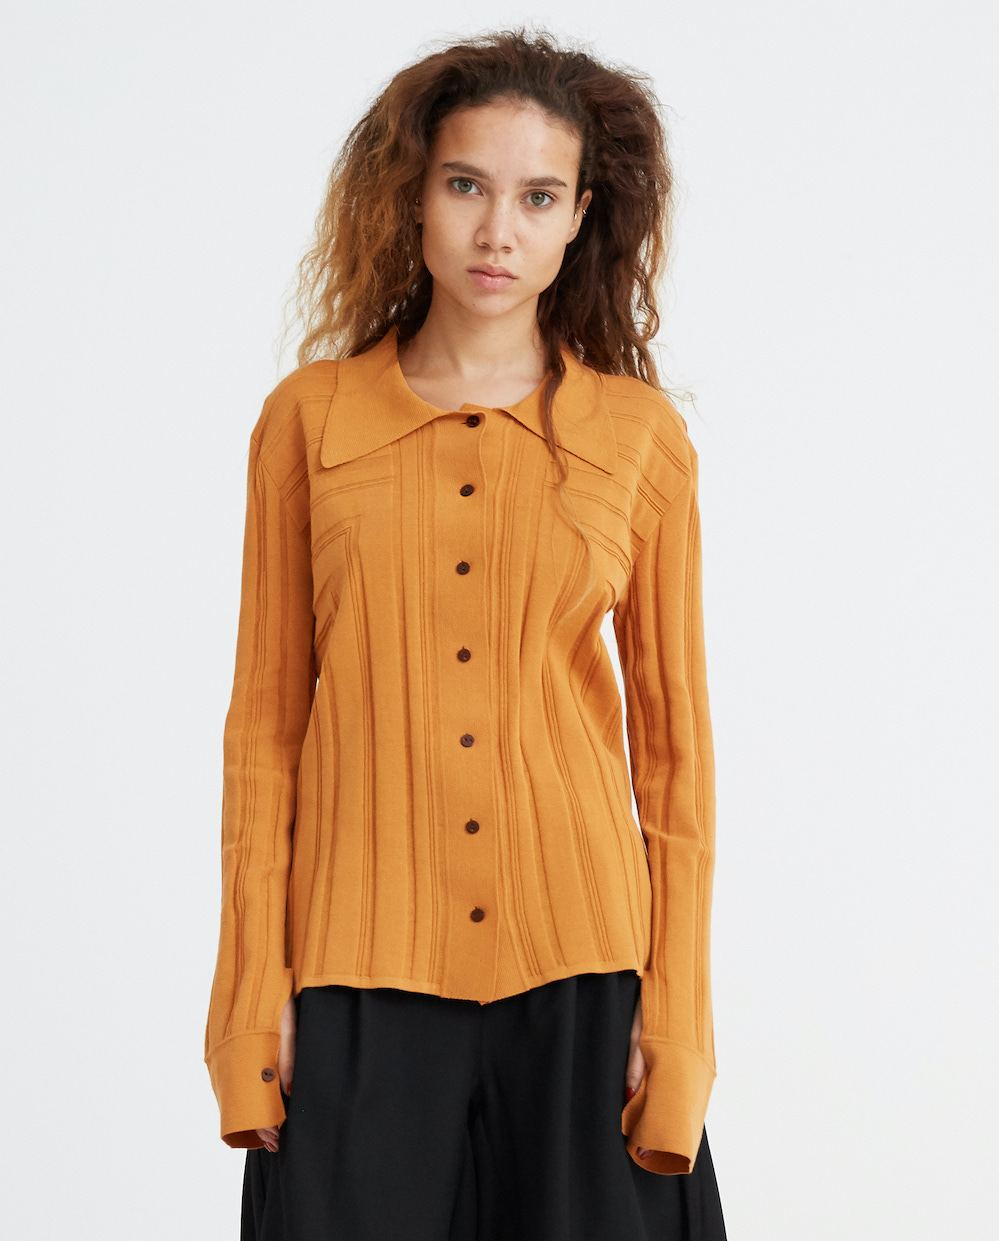 Corner Knitted Shirt - Orange WOMENS EFTYCHIA